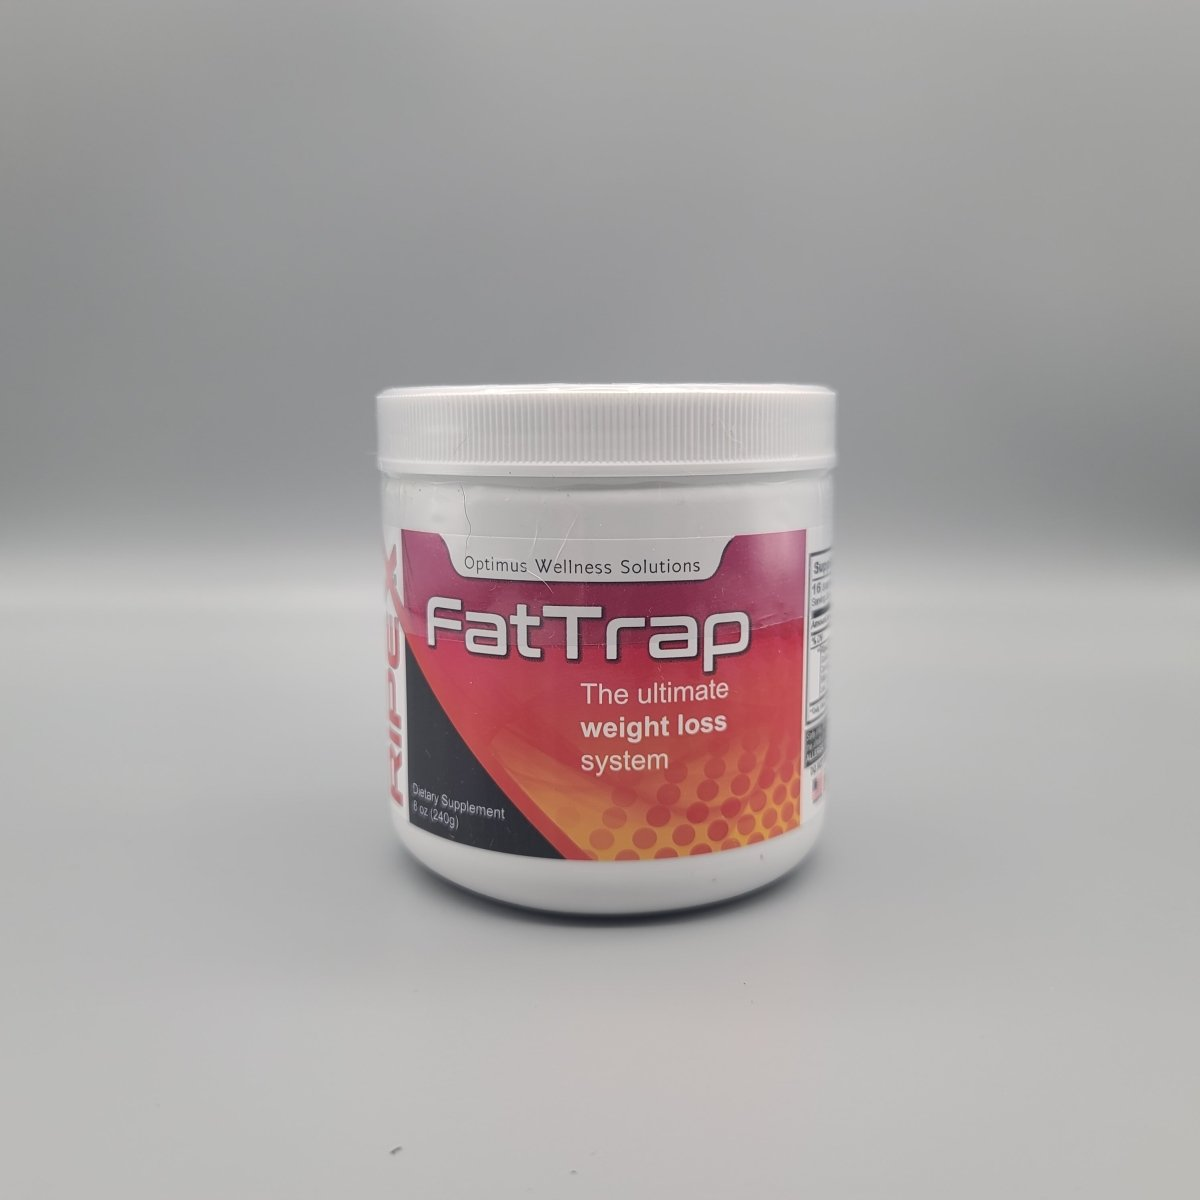 Ripex - Fat Trap - The Ultimate Weight Loss System - 8oz